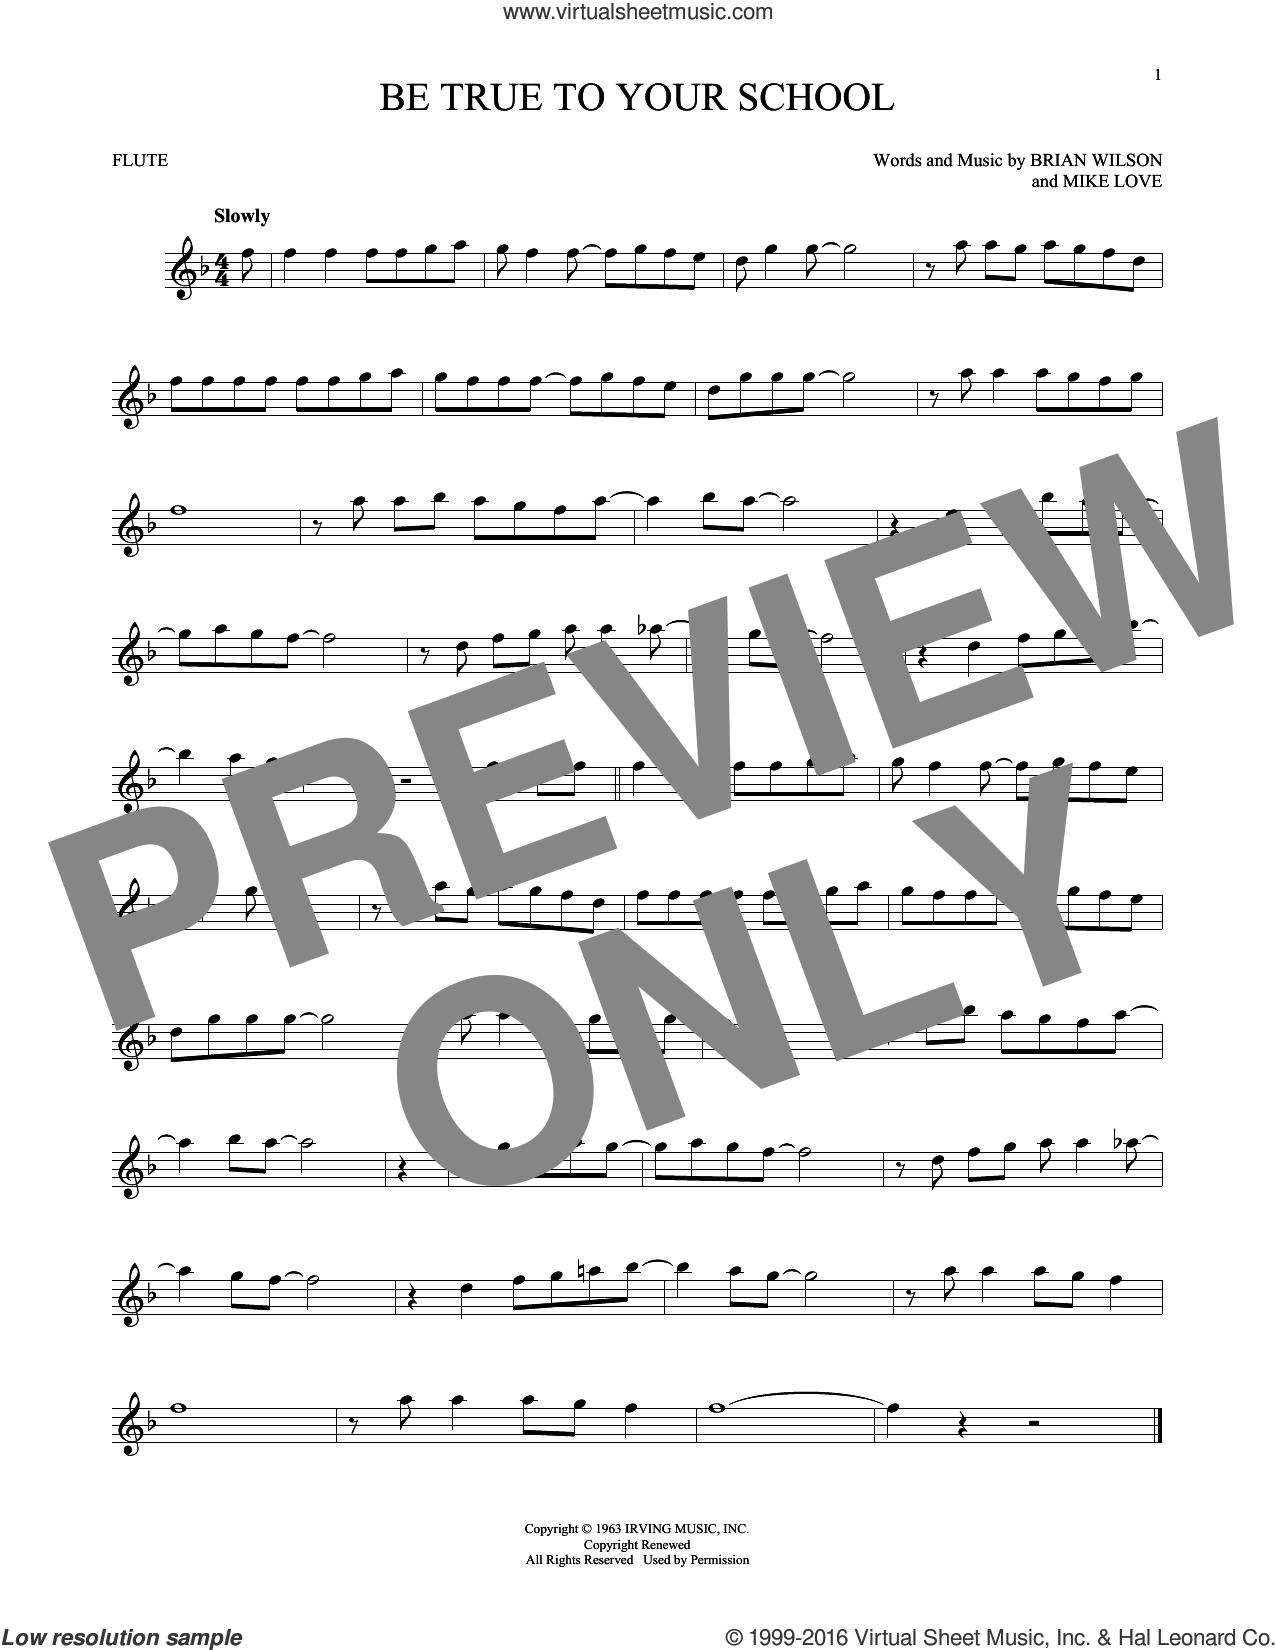 Be True To Your School sheet music for flute solo by The Beach Boys, Brian Wilson and Mike Love, intermediate skill level